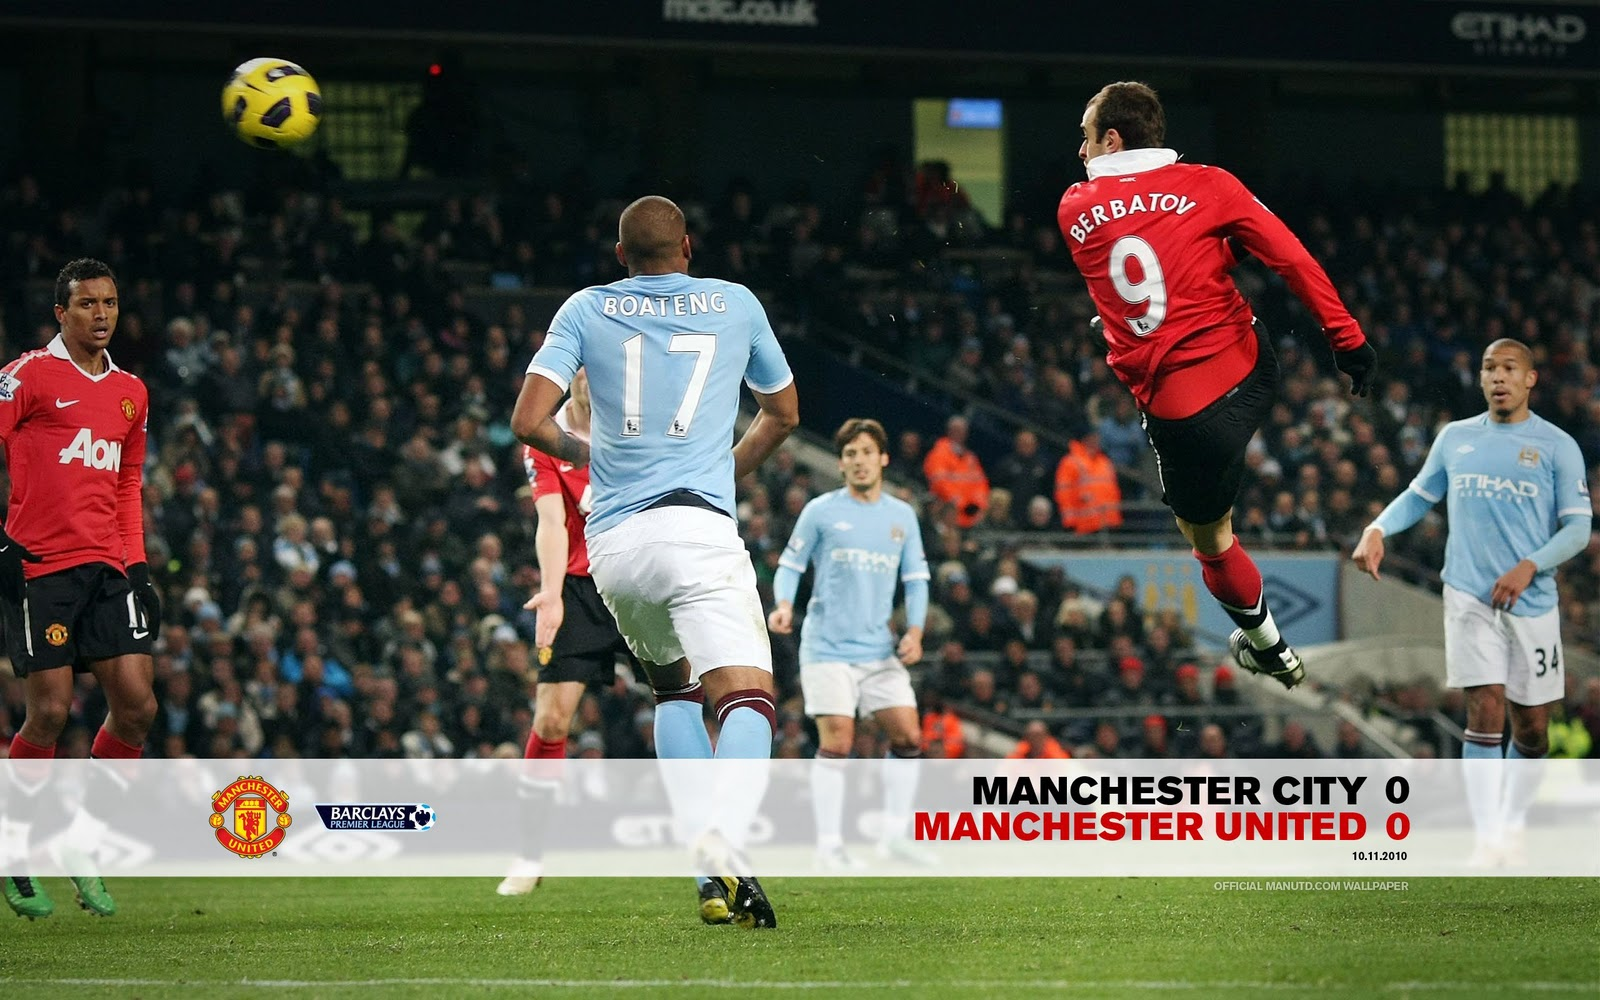 Neutrals hoping for Manchester derby in the semis